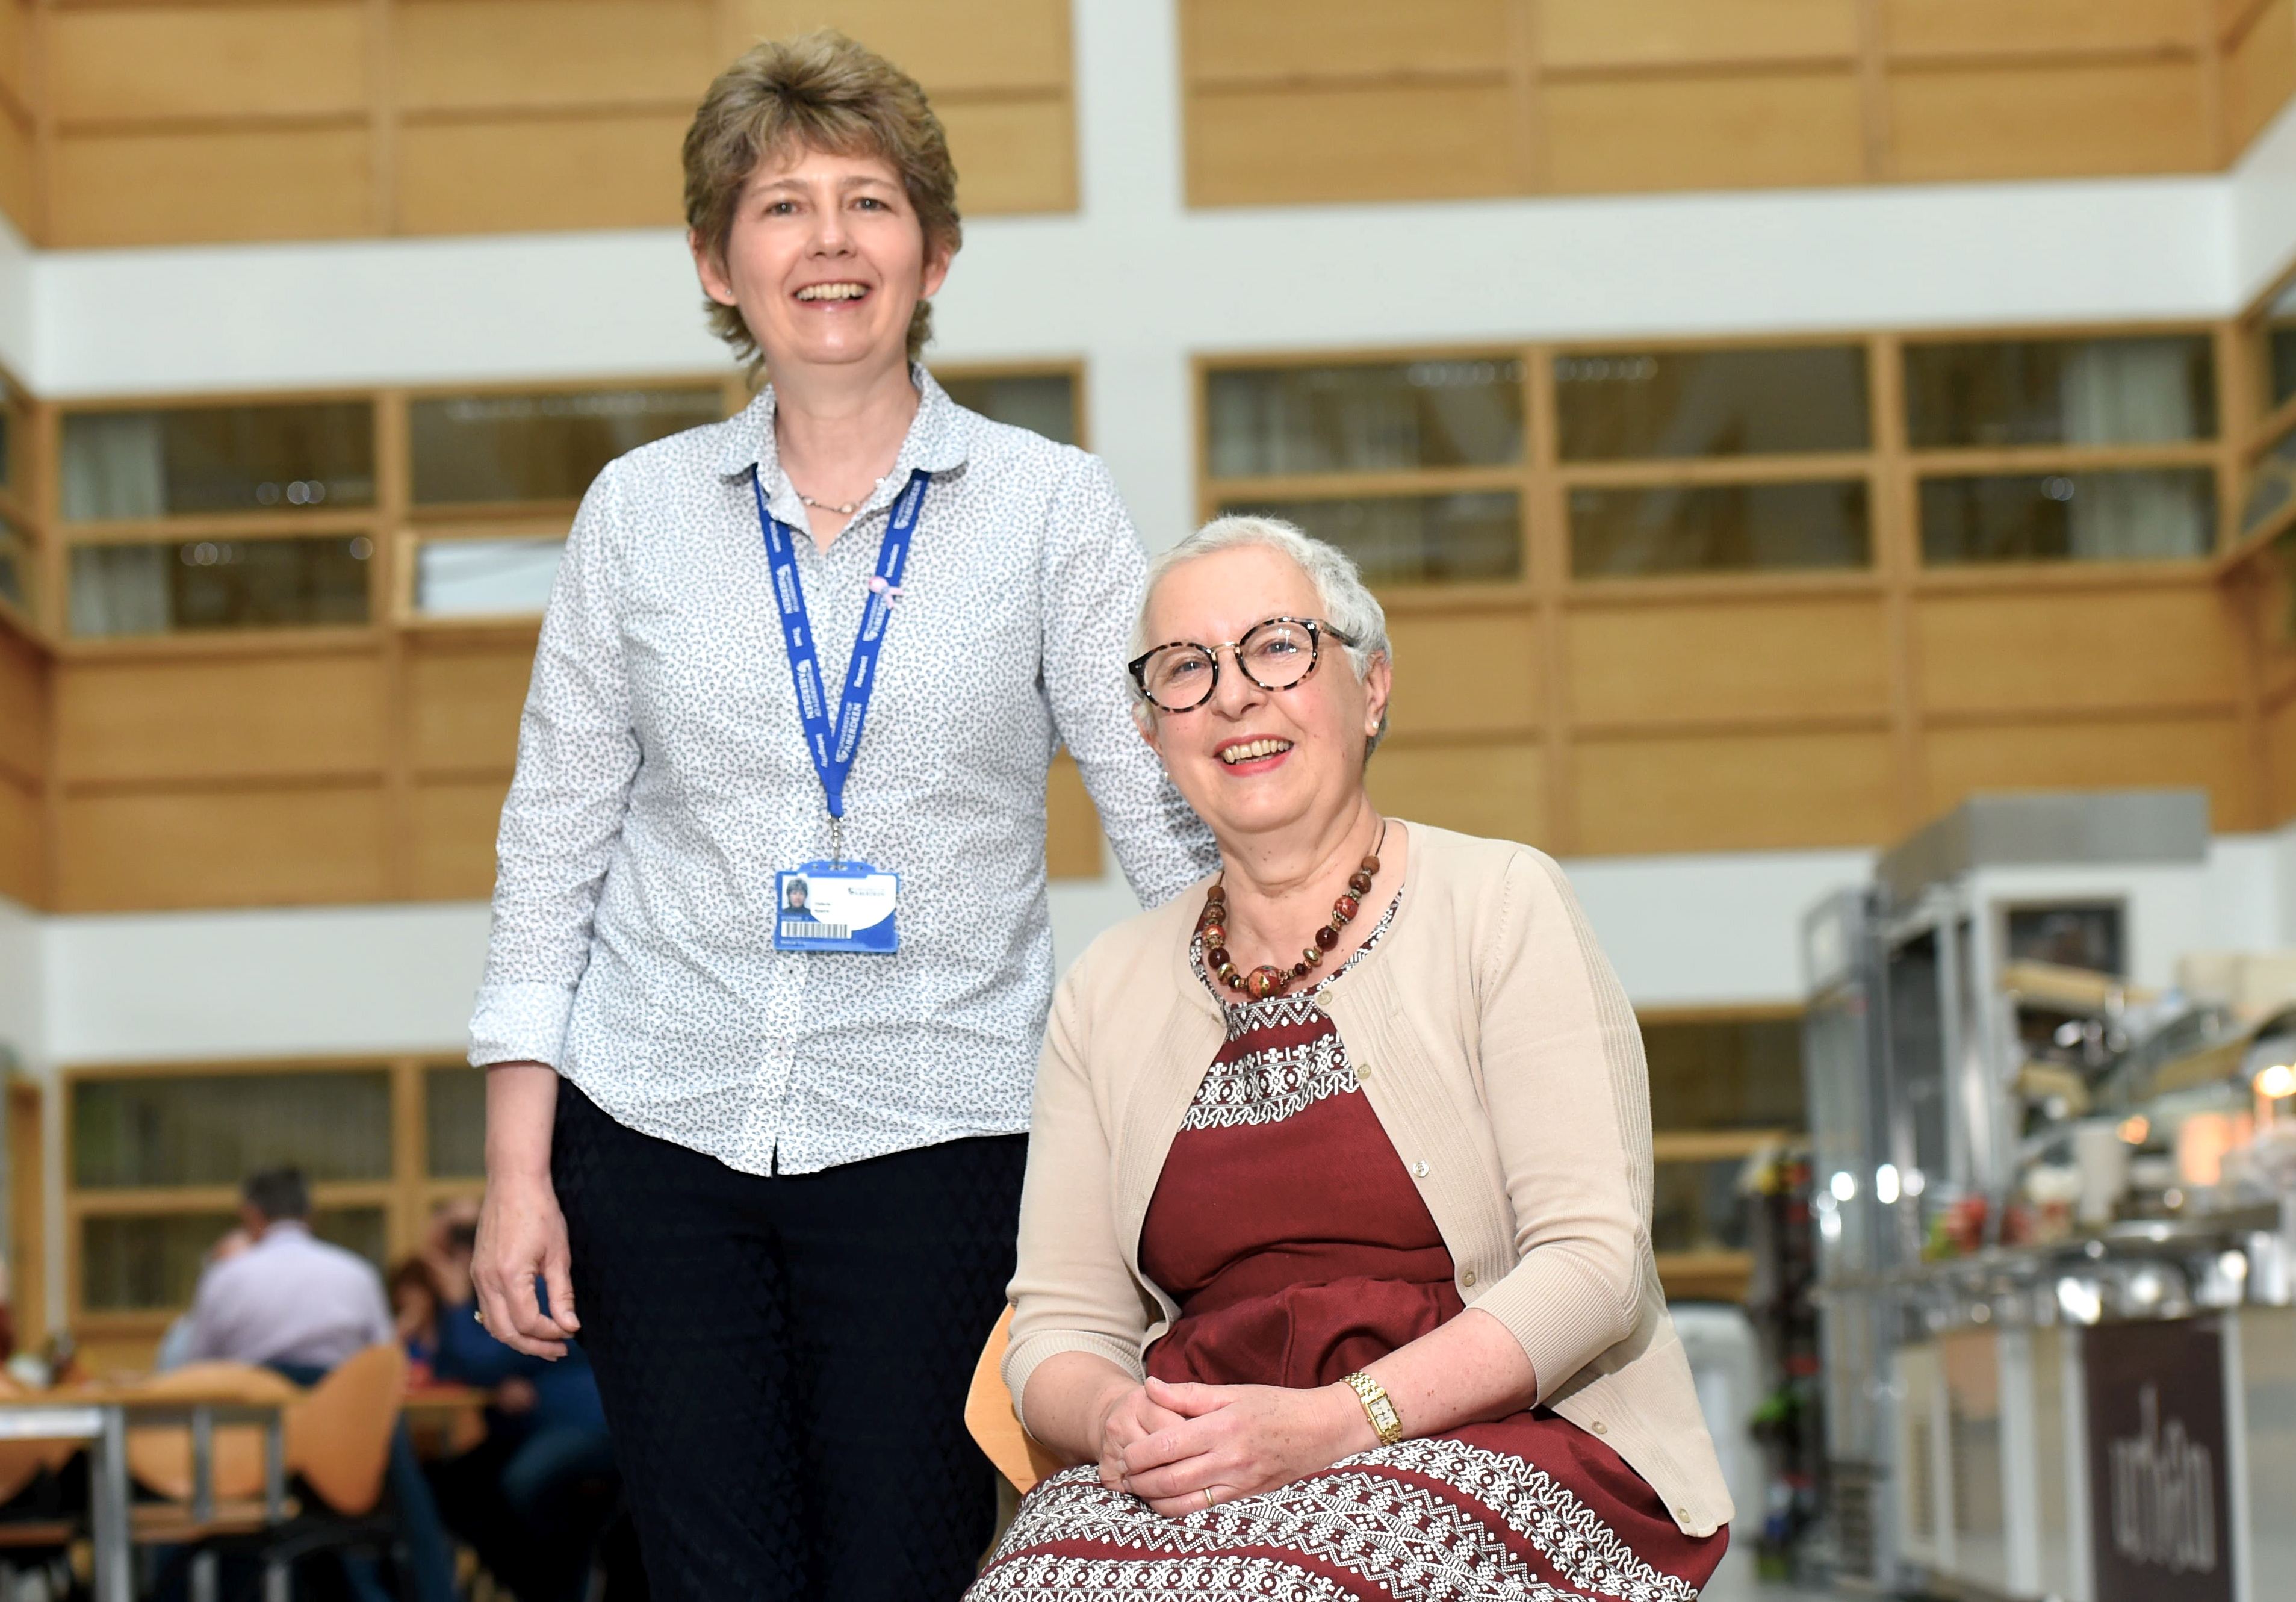 Valerie Speirs (L), Professor of Molecular Oncology and Breast Cancer Researcher and cancer patient Elaine Shallcross (R).